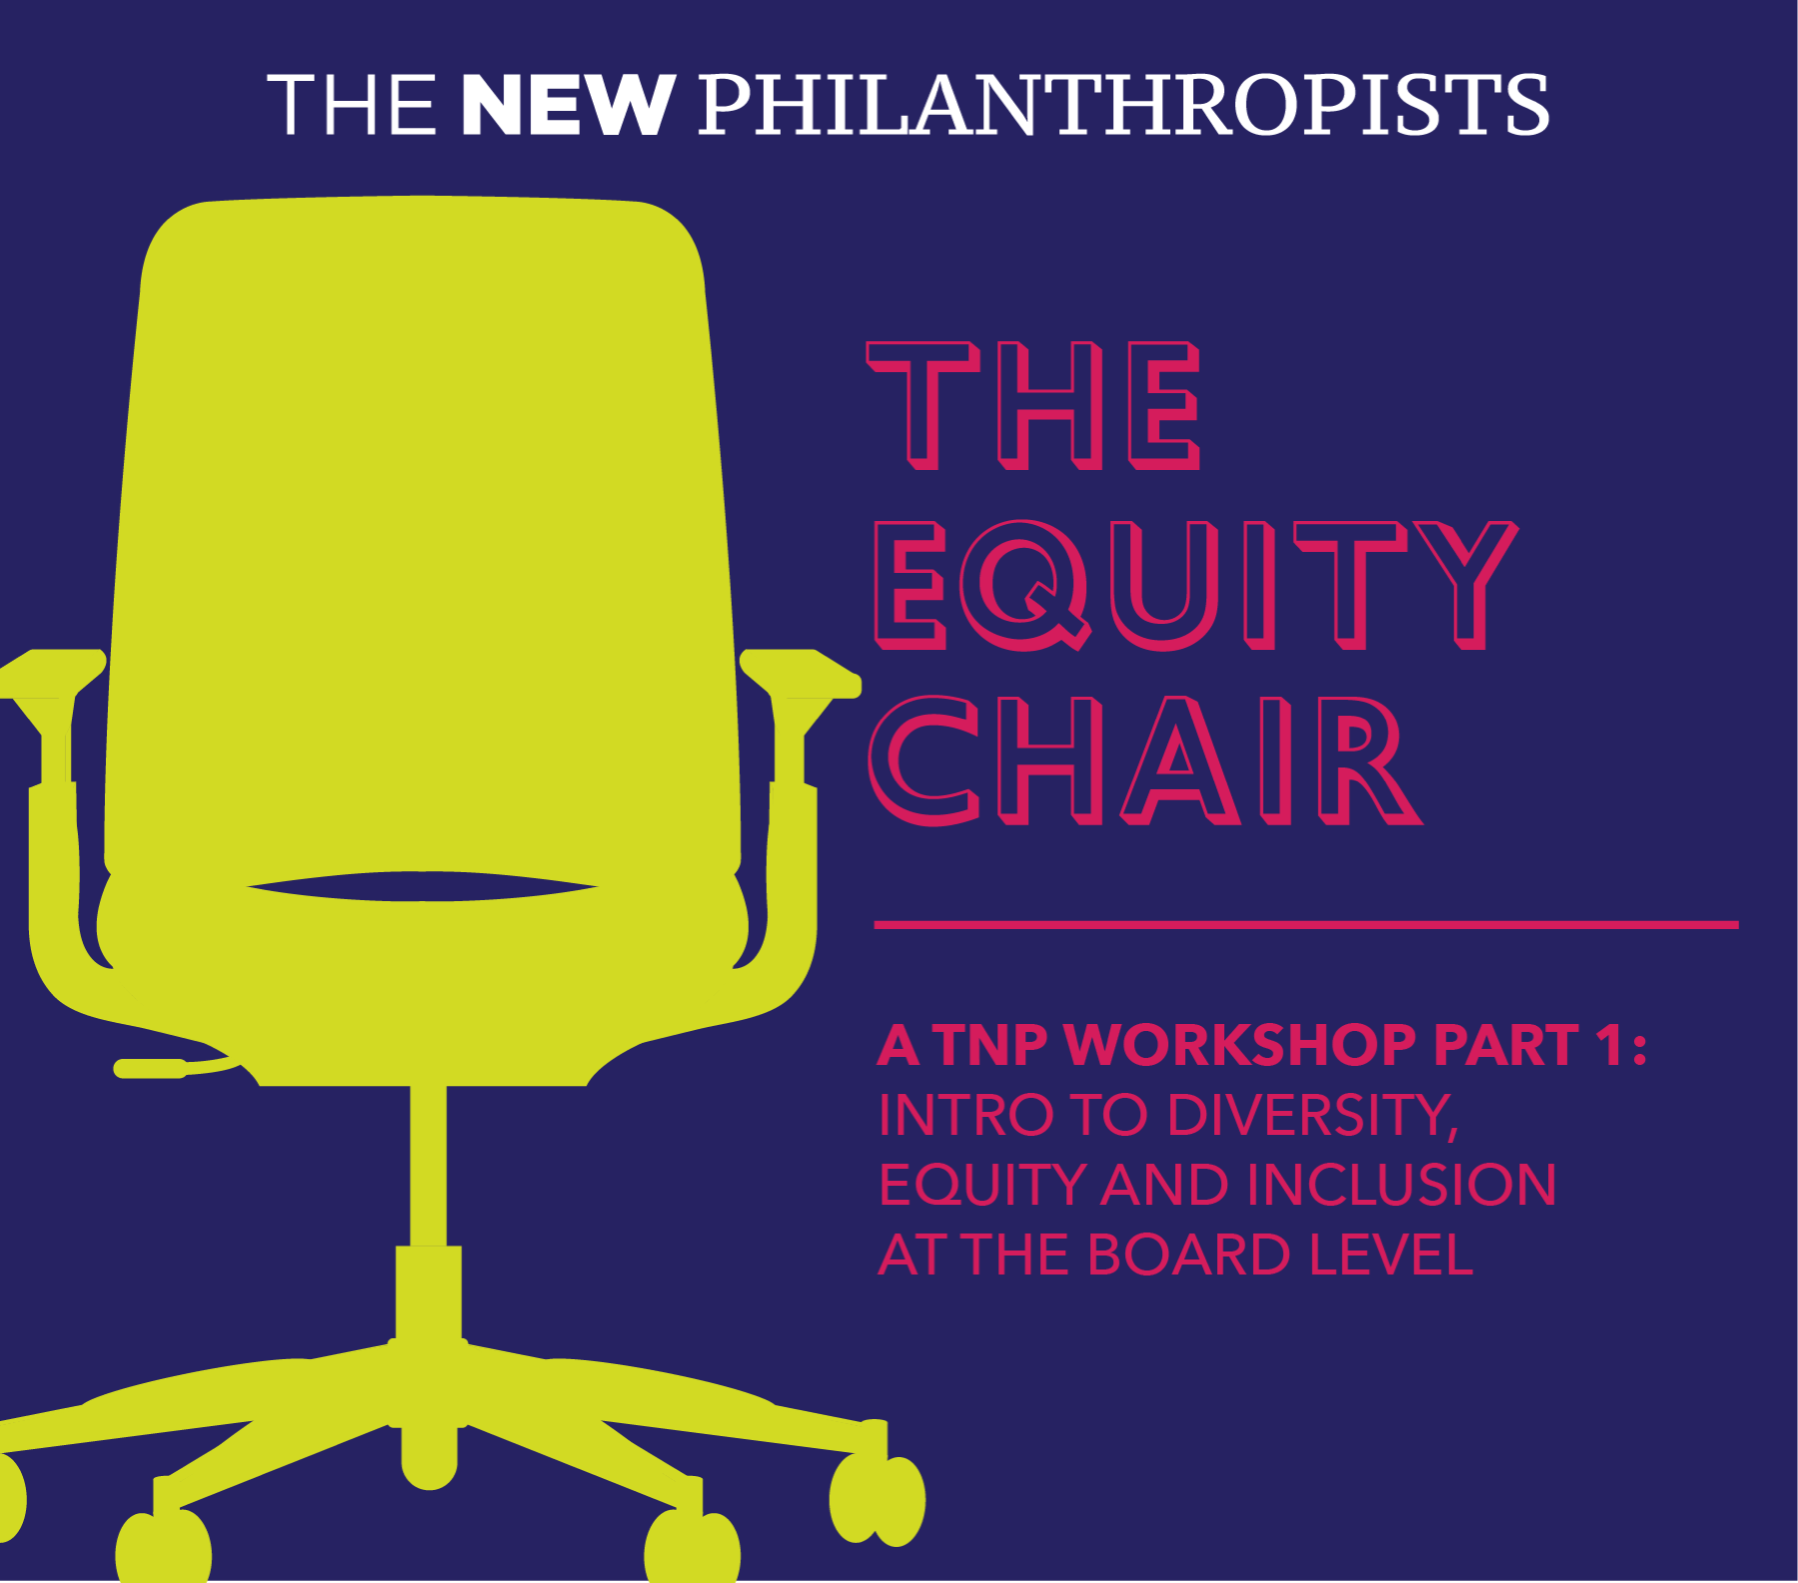 The Equity Chair Part 1 image